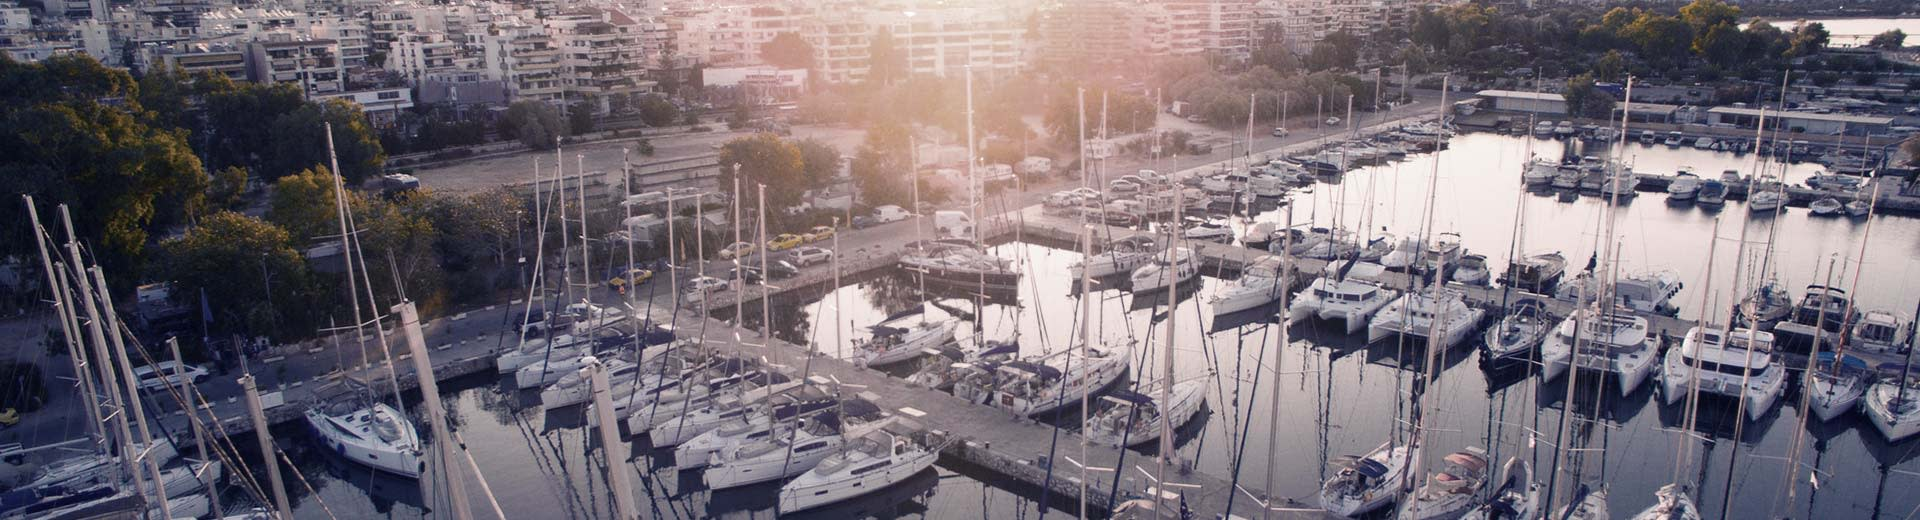 On a harbour in Piraeus, a number of private yachts lie in wait on a hot and clear day